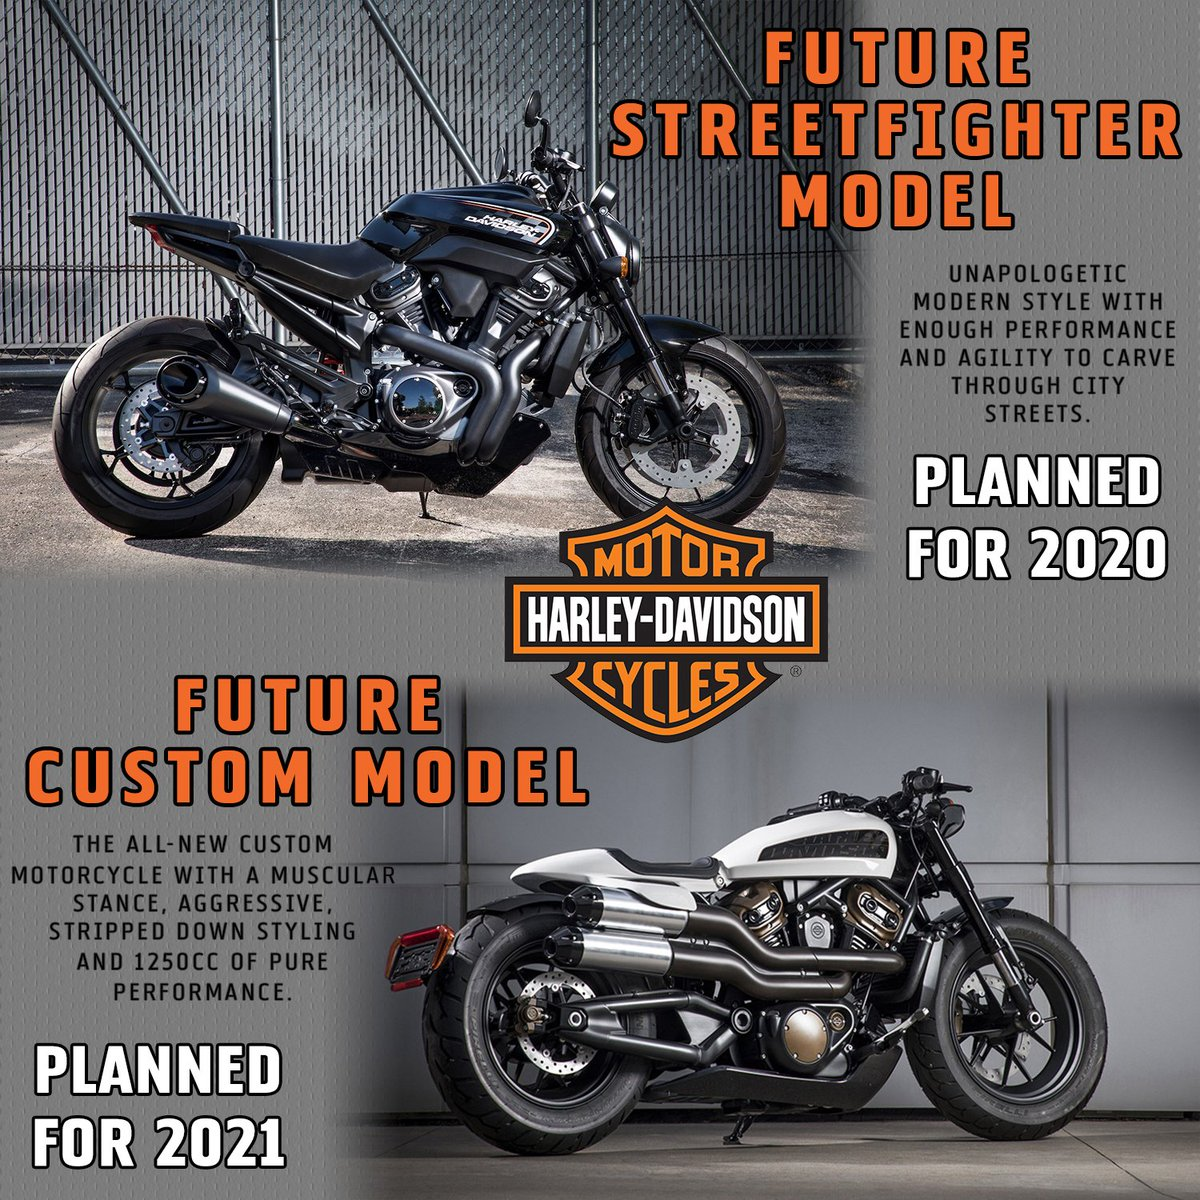 Hdofmadison On Twitter Check Out The Future Streetfighter Model Planned For 2020 Future Custom Model Planned For 2021 Harleydavidson Released A Couple Days Ago On Moreroadstoharleydavidson Https T Co Ber71dsvli Harley Hdmc